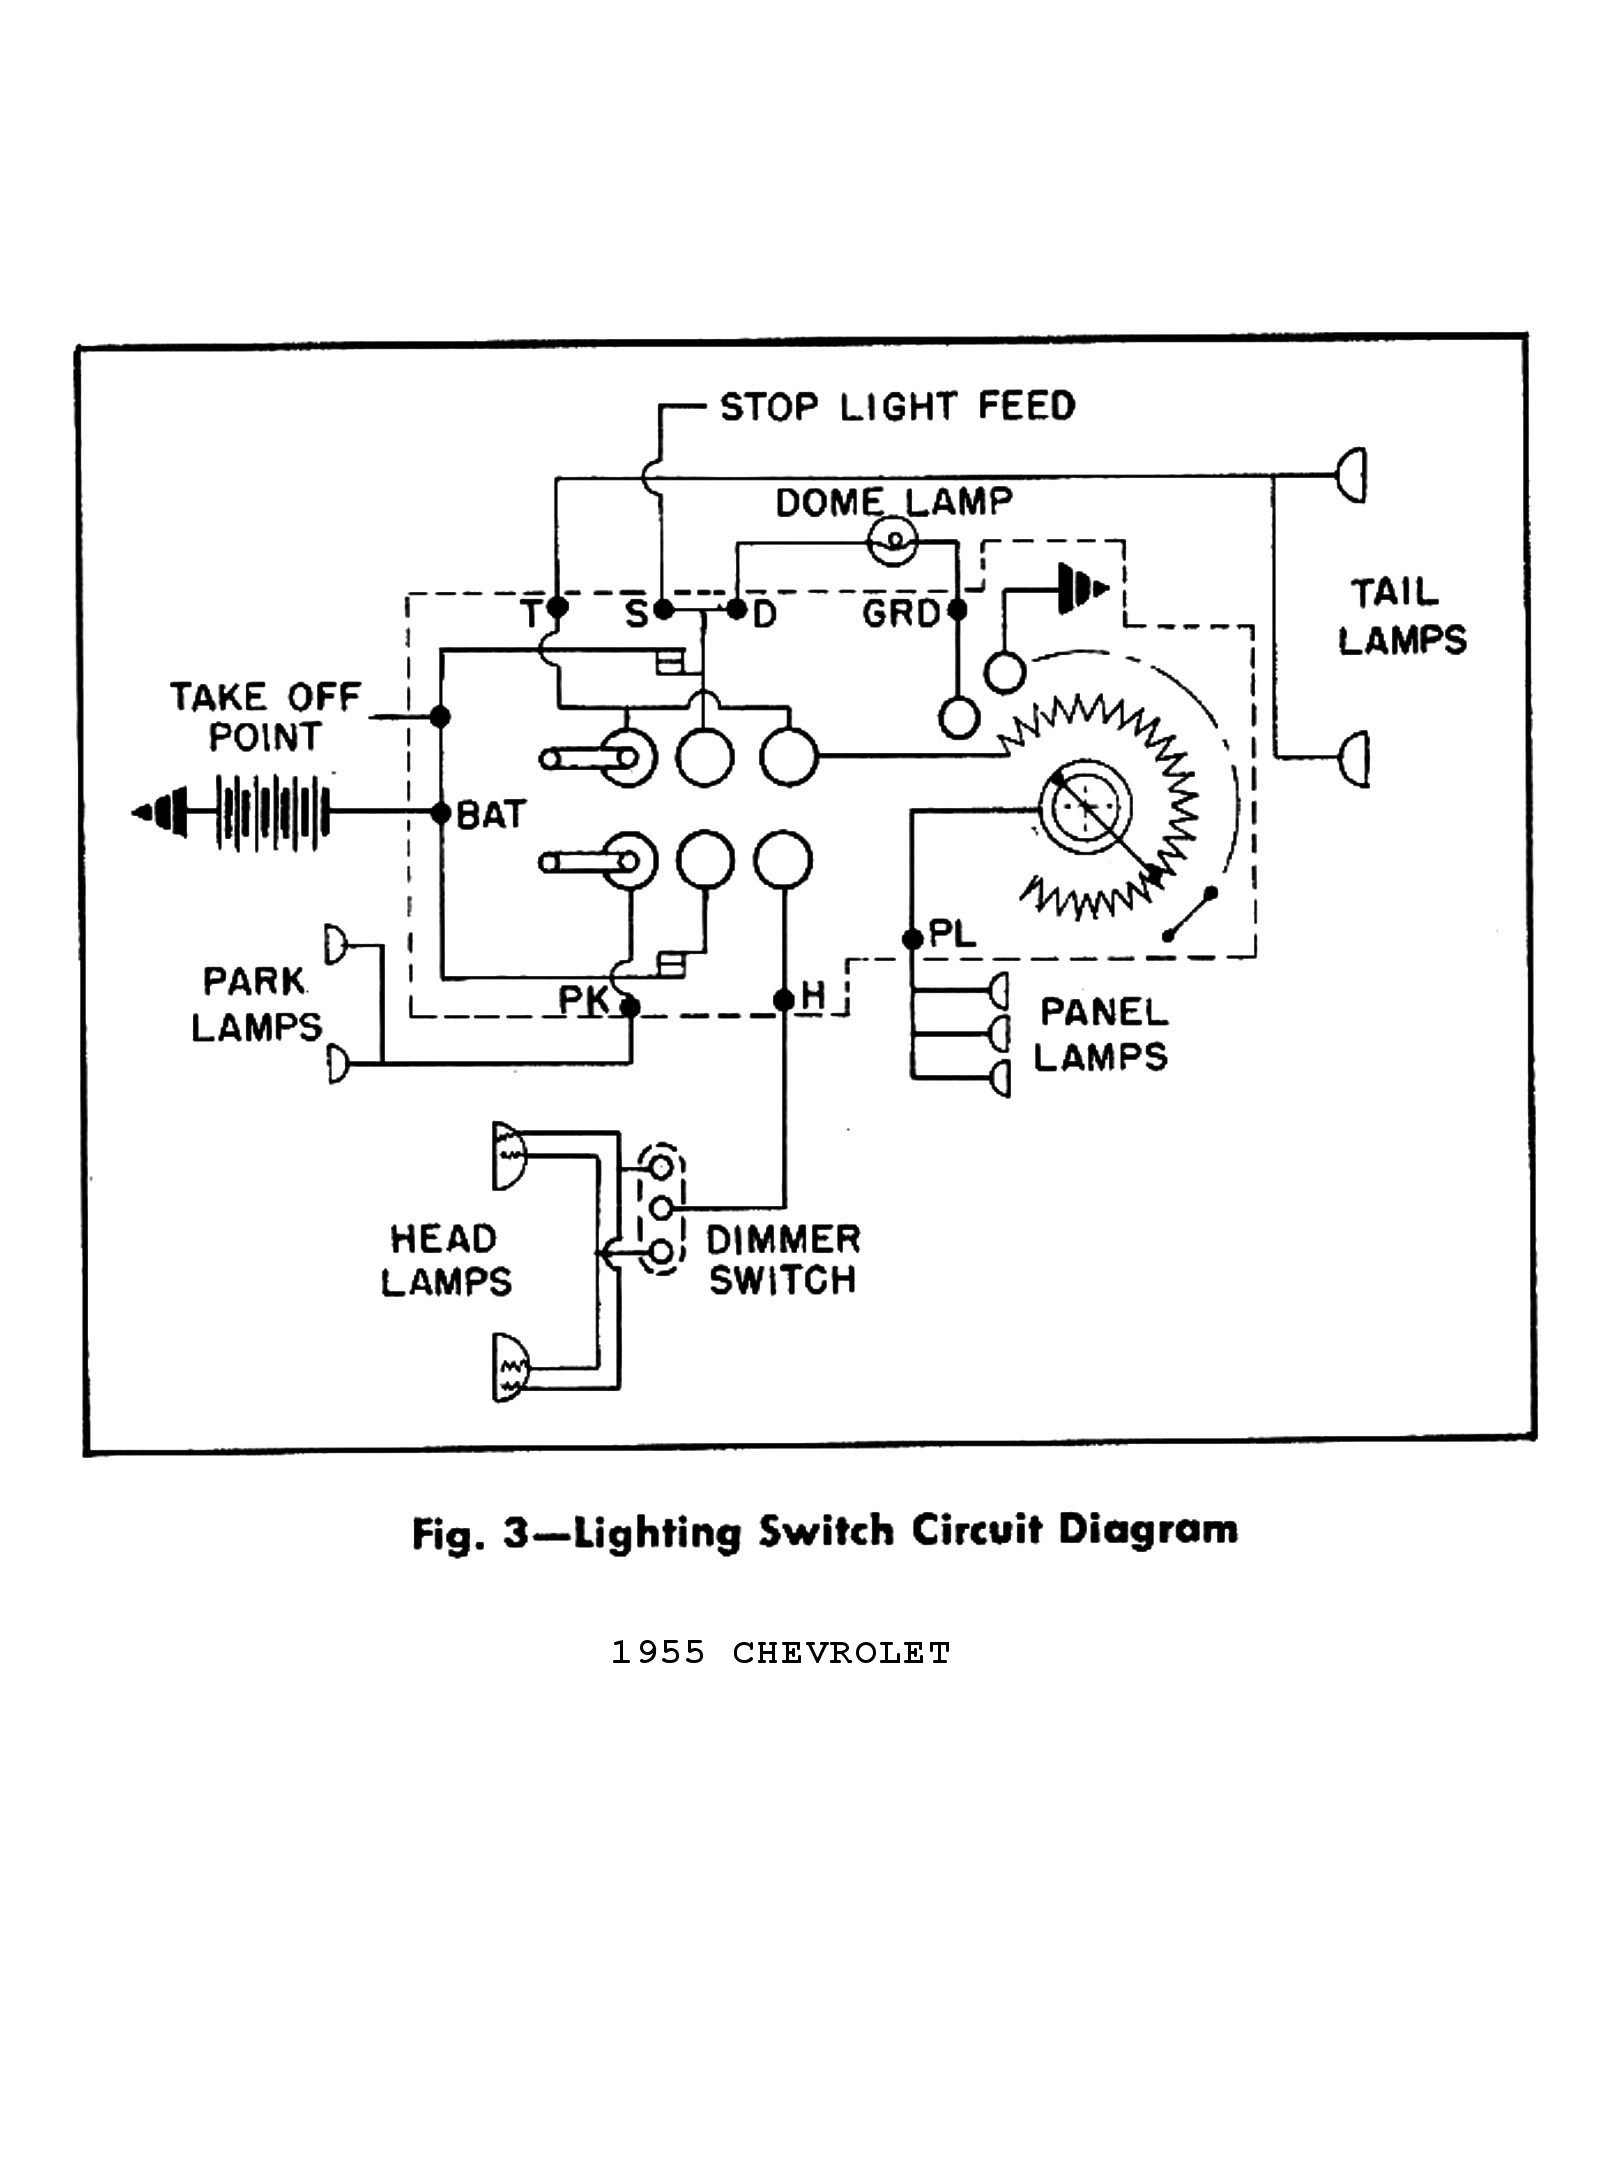 1956 Ford Headlight Switch Wiring Diagram from chevy.oldcarmanualproject.com